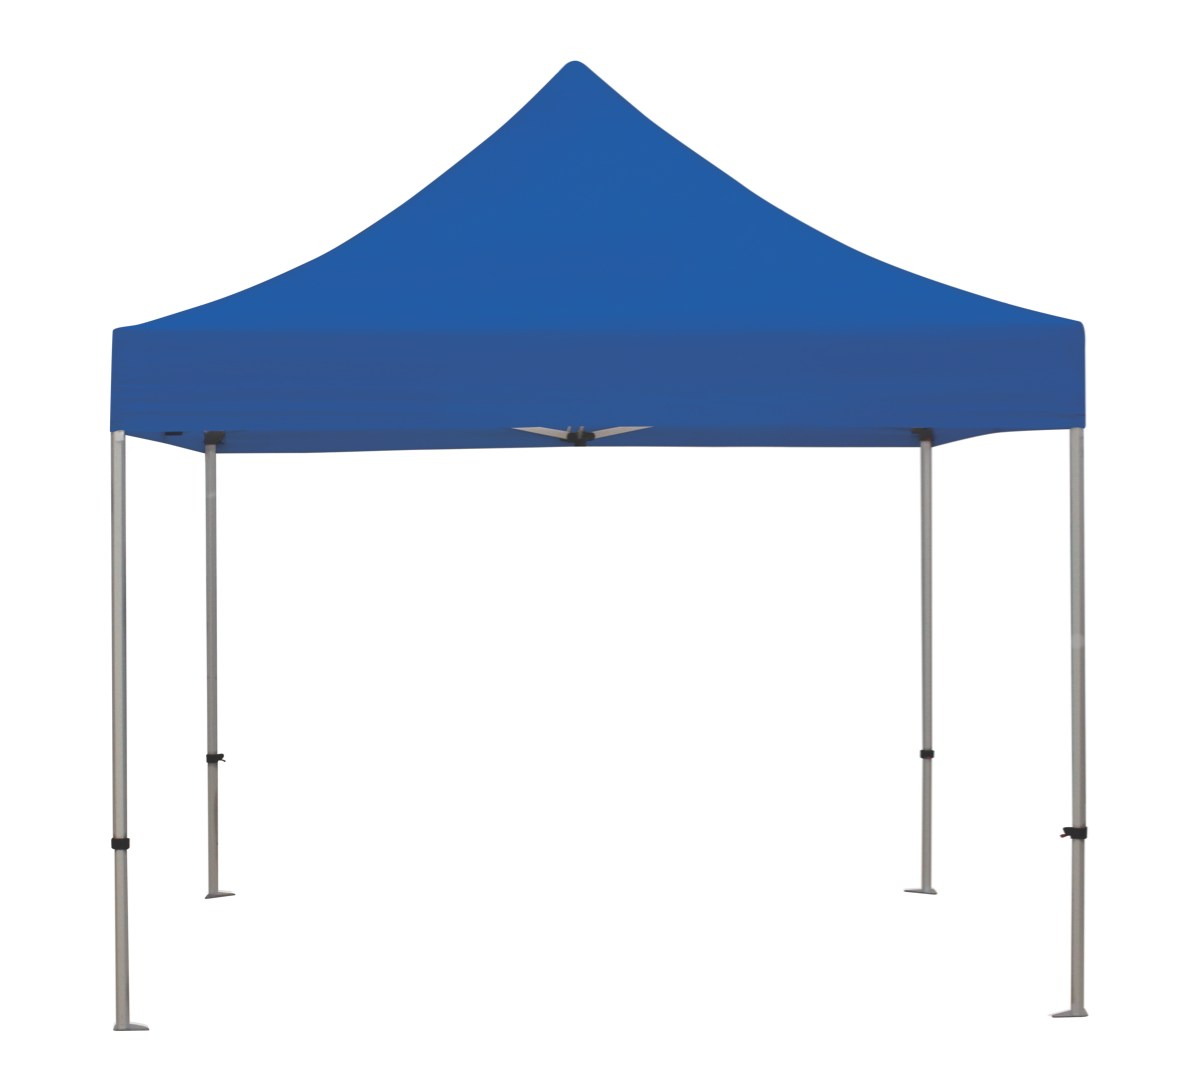 Tent clipart outdoor Clipart Canopy clipart clipart Canopy